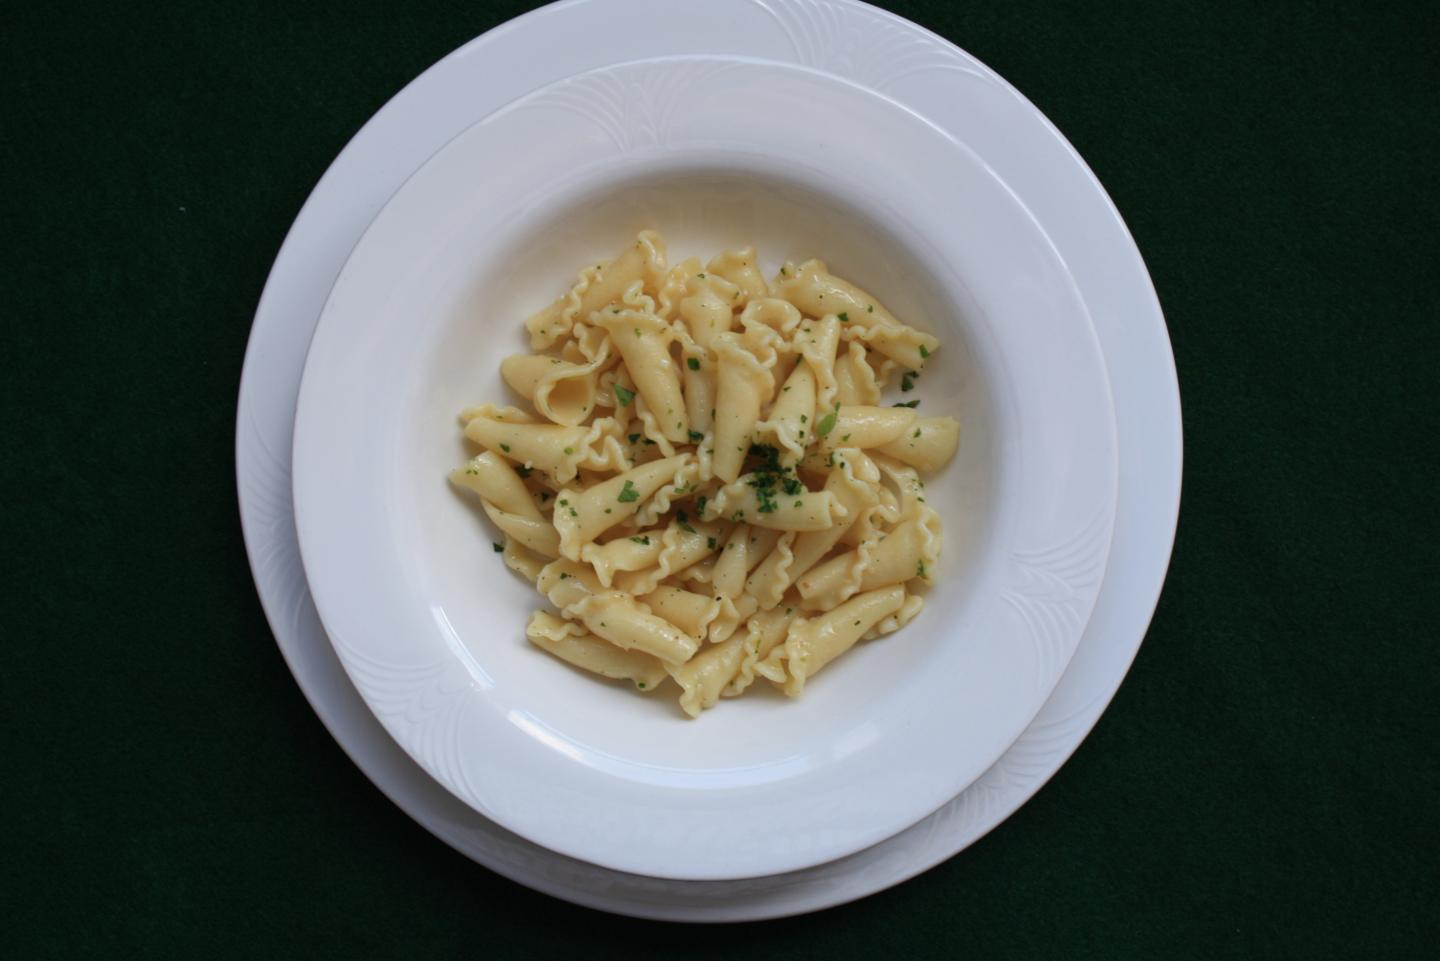 """This dish of """"pasta aglio e olio"""" (pasta with garlic and oil) was used to determine the likeability of the main course after a good or mediocre appetizer in Jacob Lahne's study. CREDIT Jacob Lahne"""